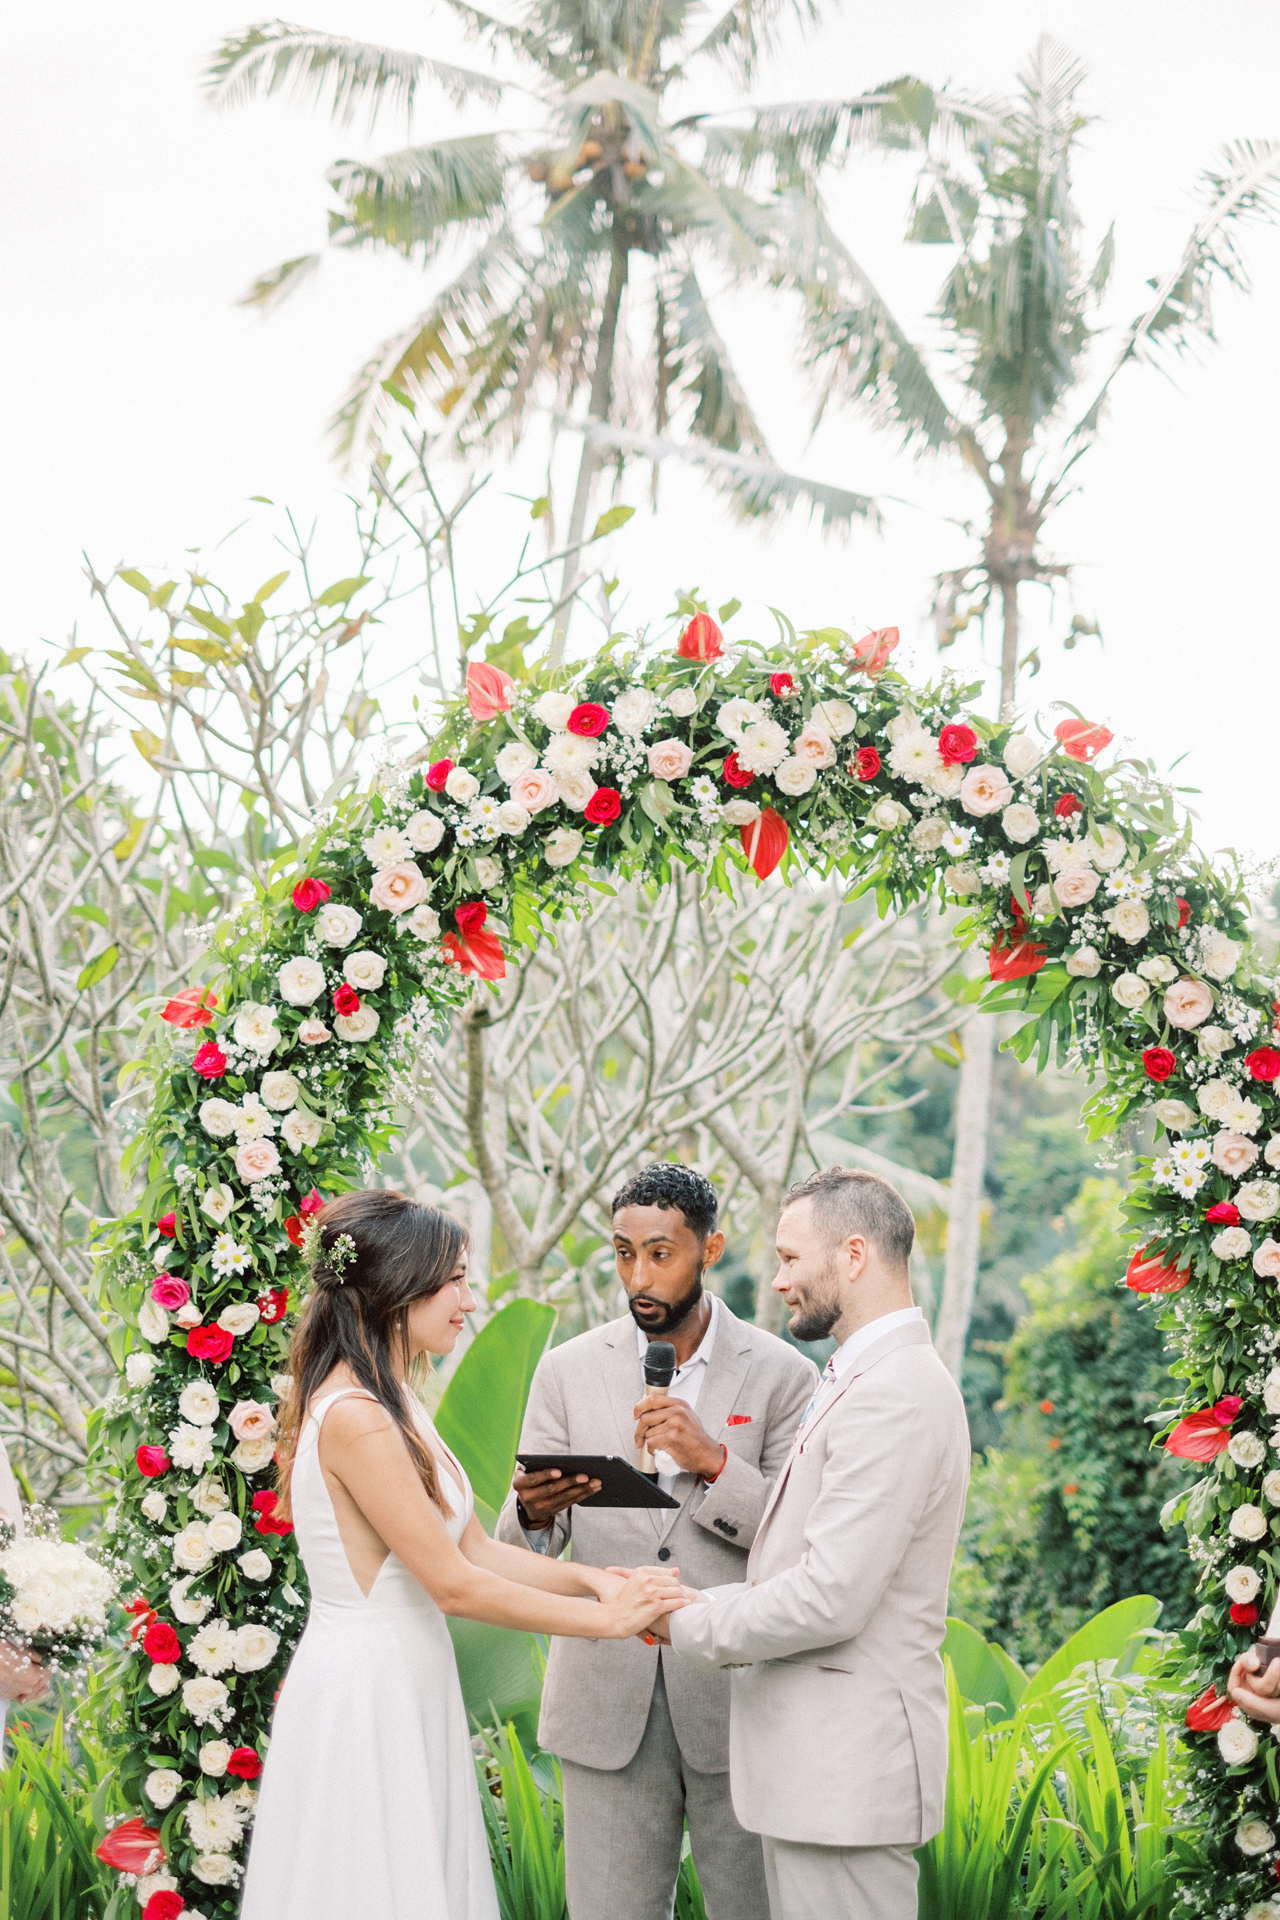 K&R: Greeneries Ubud Wedding - Ubud Wedding Photographer 34